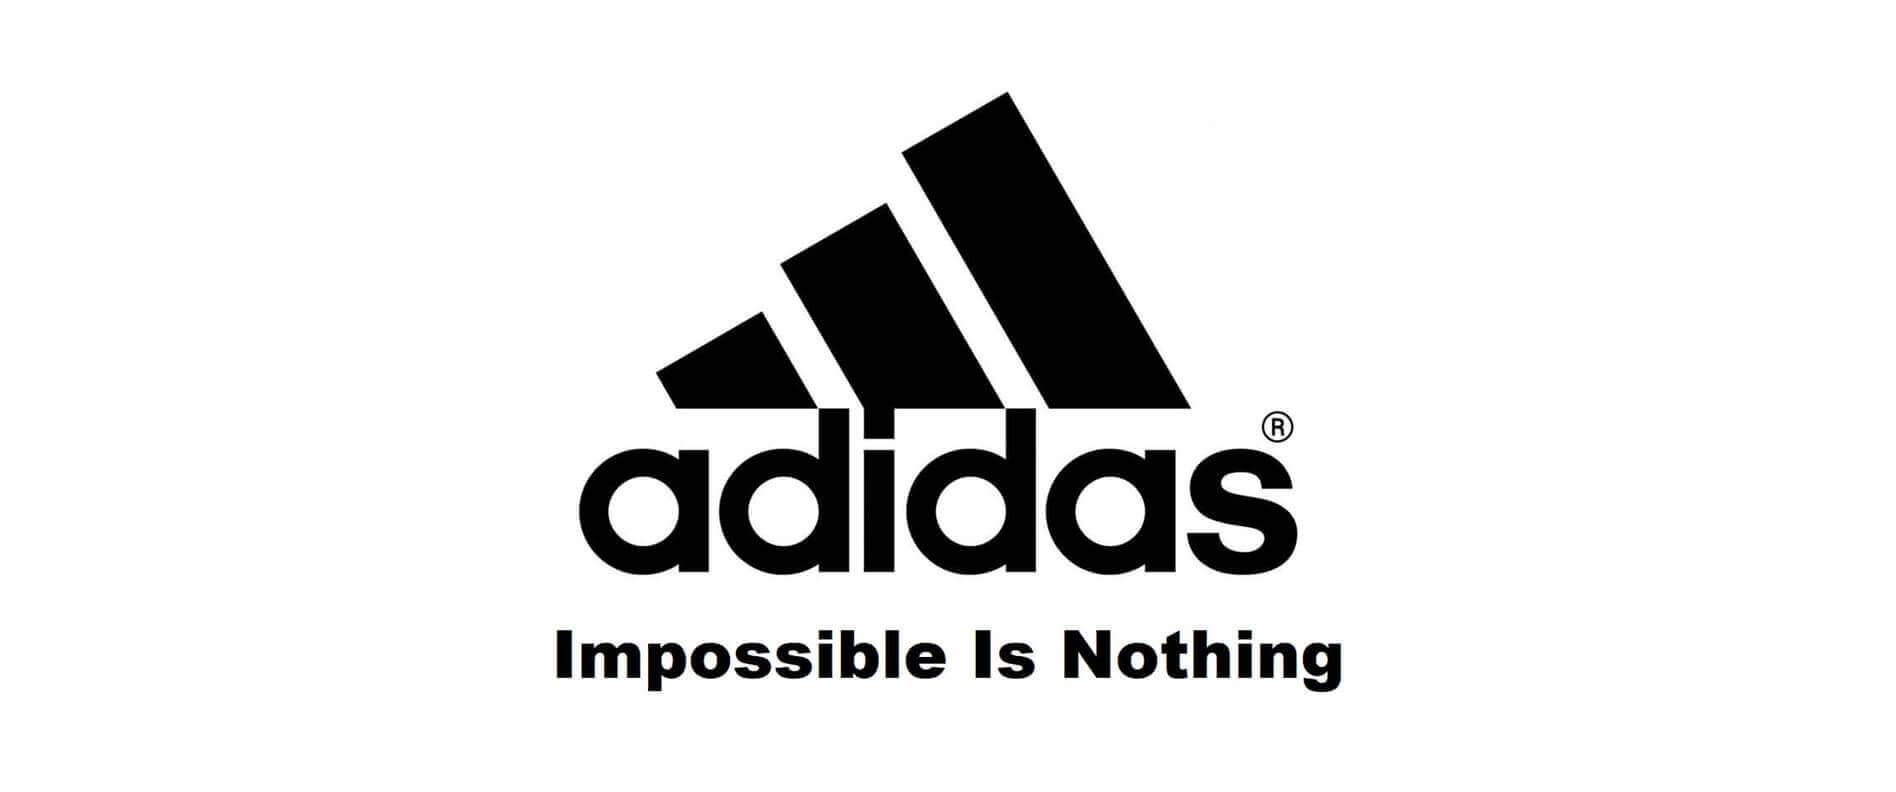 Narabar microscopio matrimonio  The Power of the Adidas Slogan: Everything You Need to Know